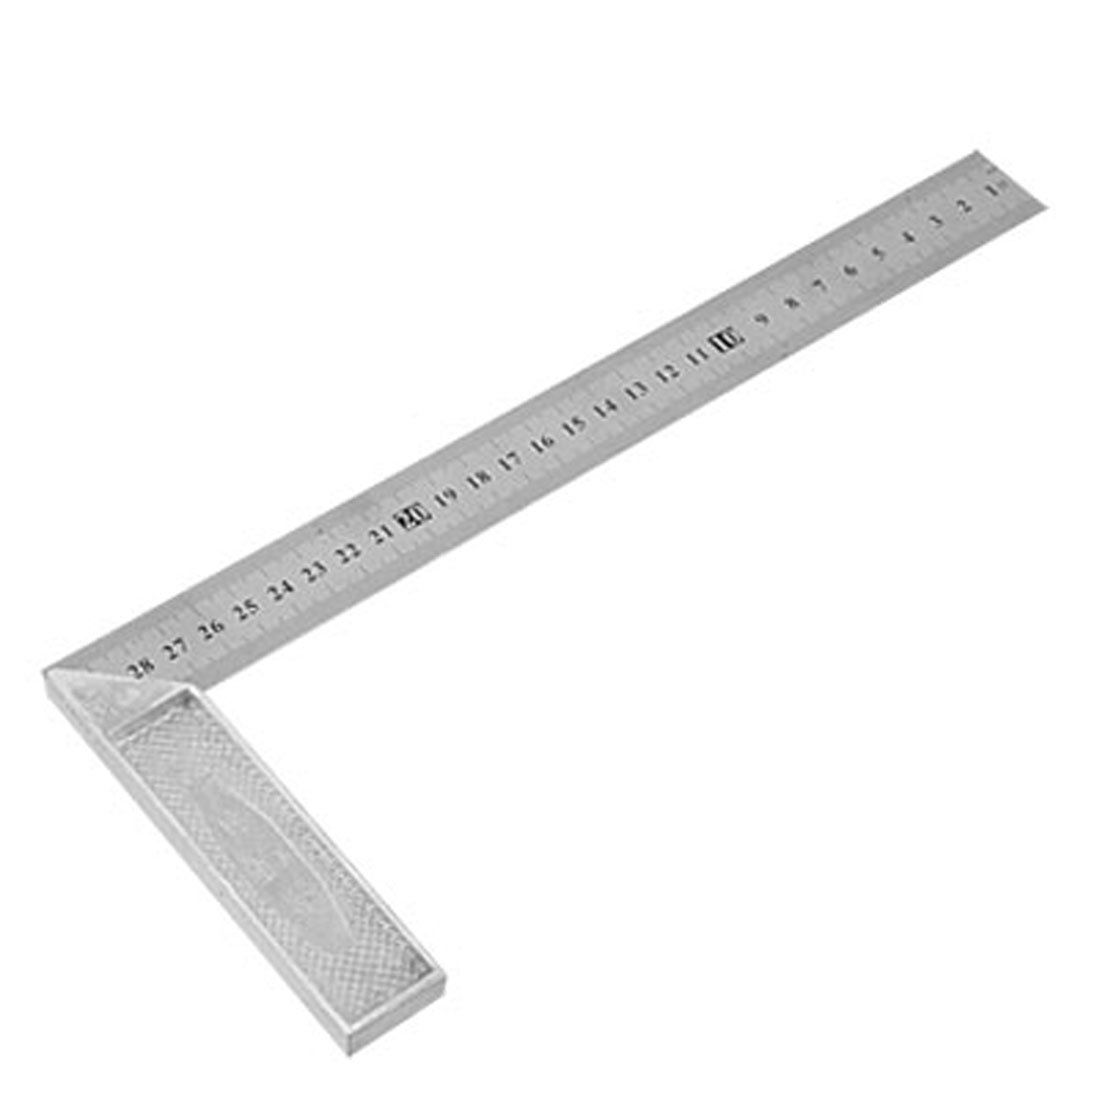 Uxcell Engineers Double Side Metric Ruler Try Miter Square Repair Parts 30cm